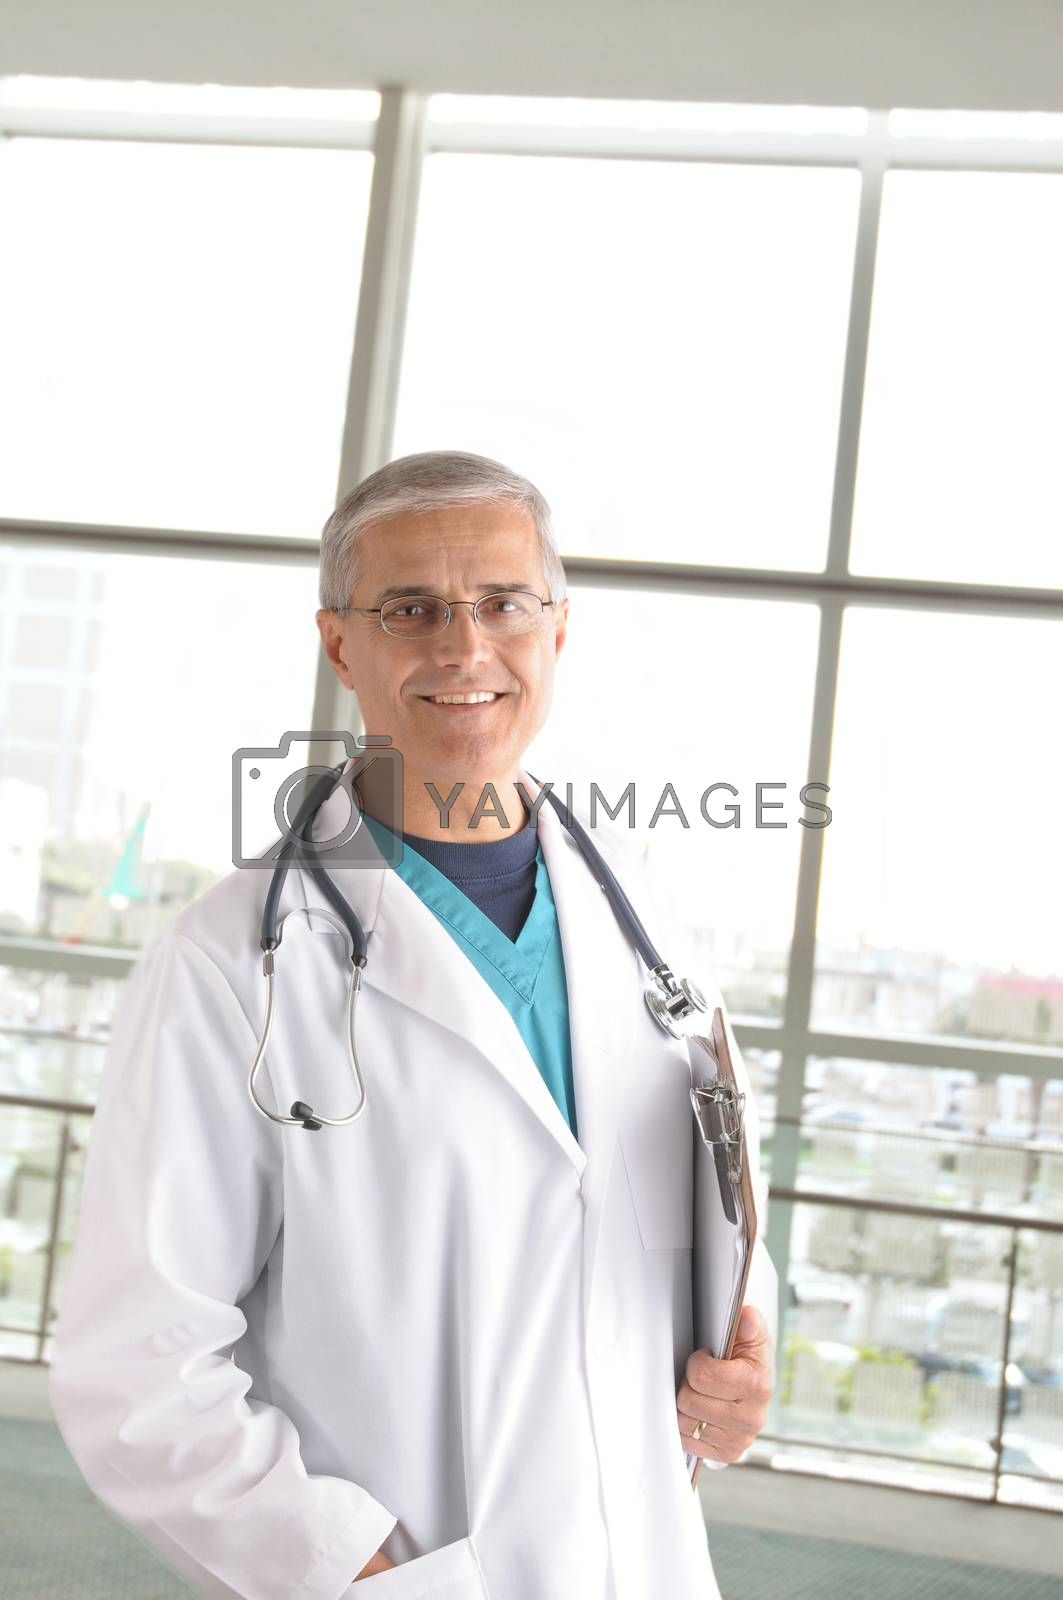 Middle aged doctor with stethoscope and clip board standing in front of large window in modern medical facility